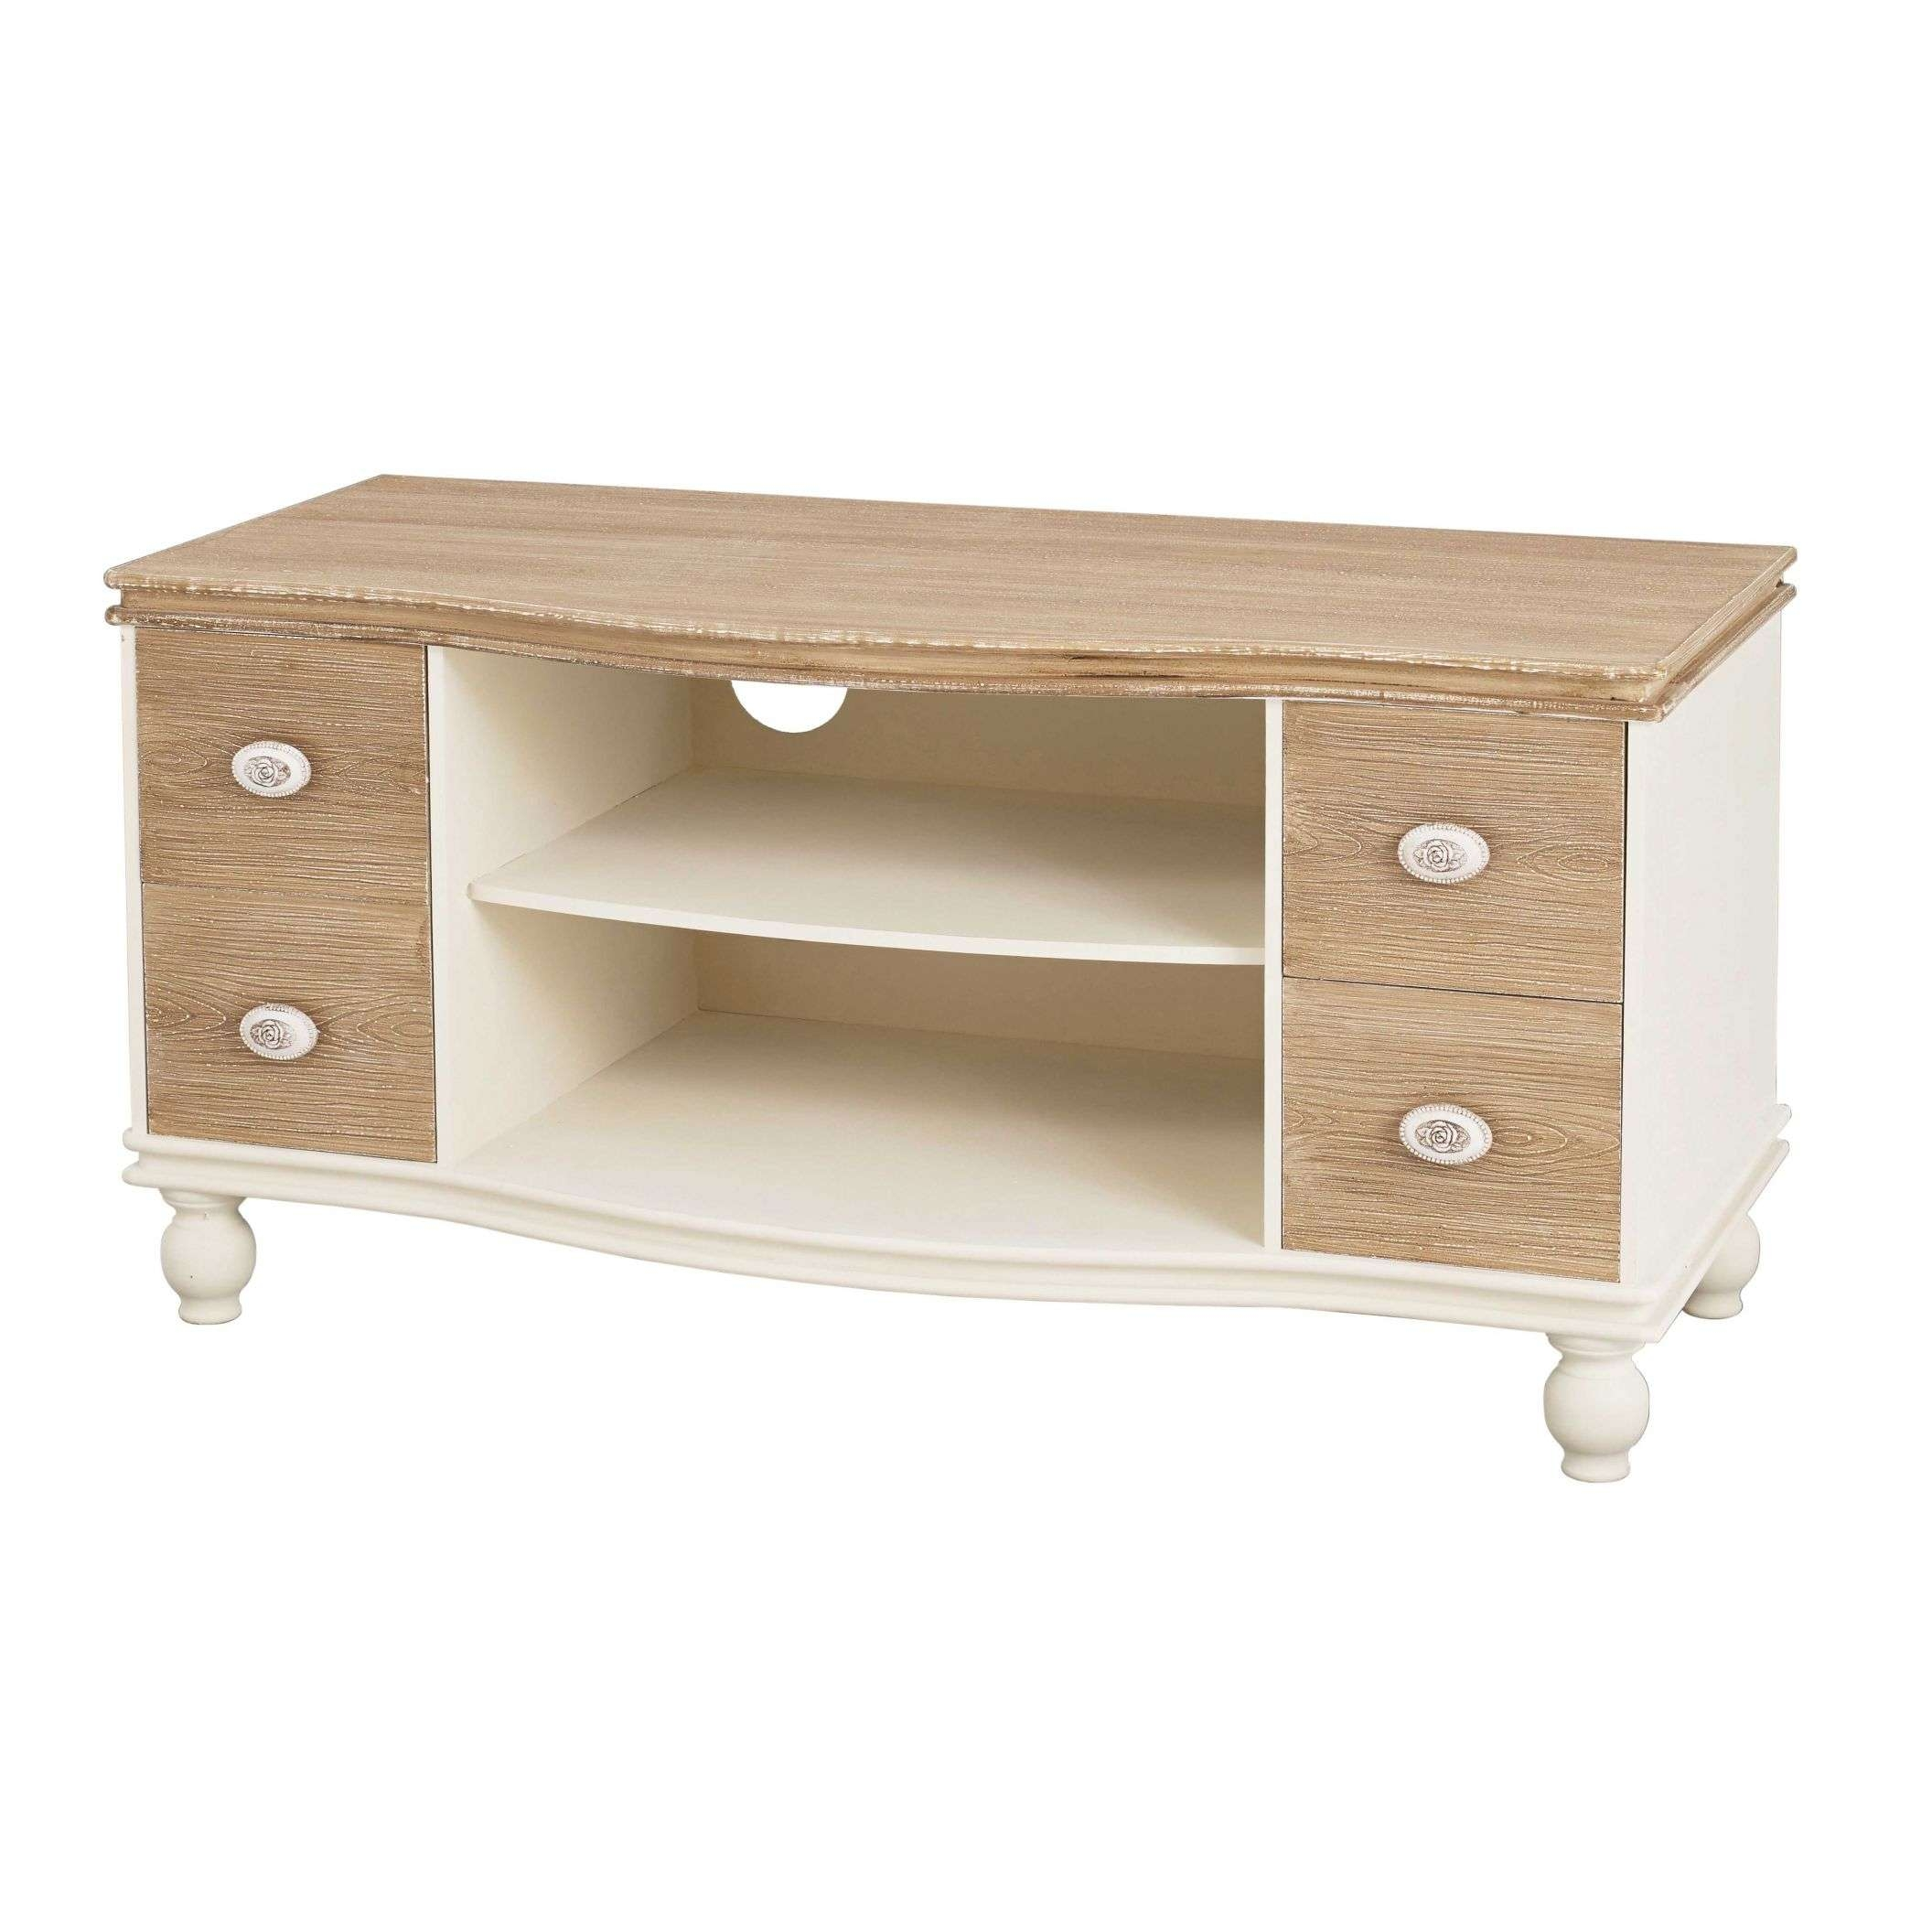 Juliette Shabby Chic Tv Unit | French Style Furniture Throughout Shabby Chic Tv Cabinets (View 6 of 20)